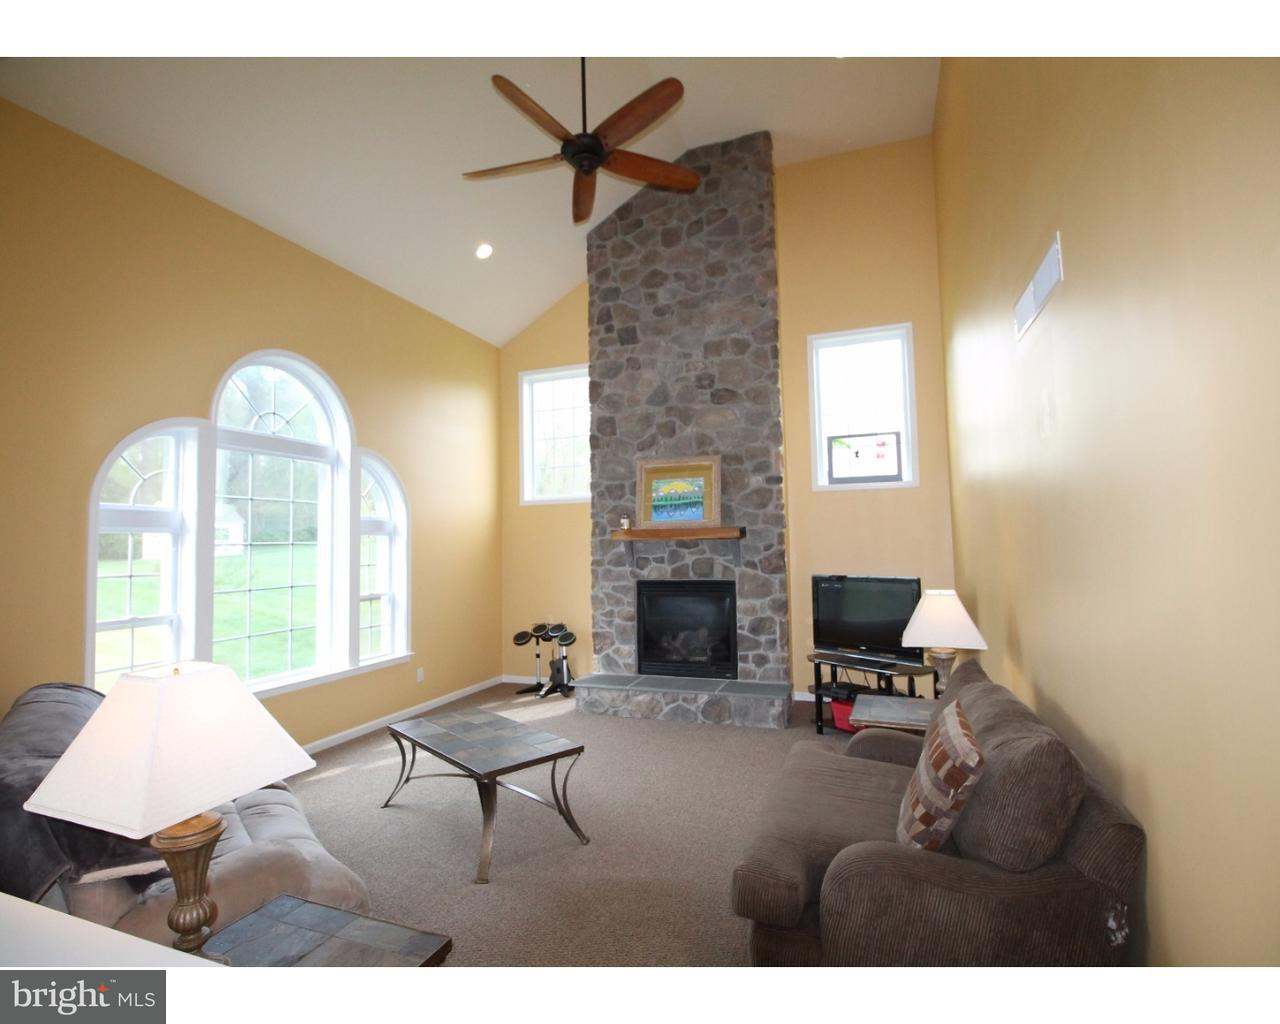 406 WYNSTONE CT, NEW LONDON TWP - Listed at $429,900, NEW LONDON TWP